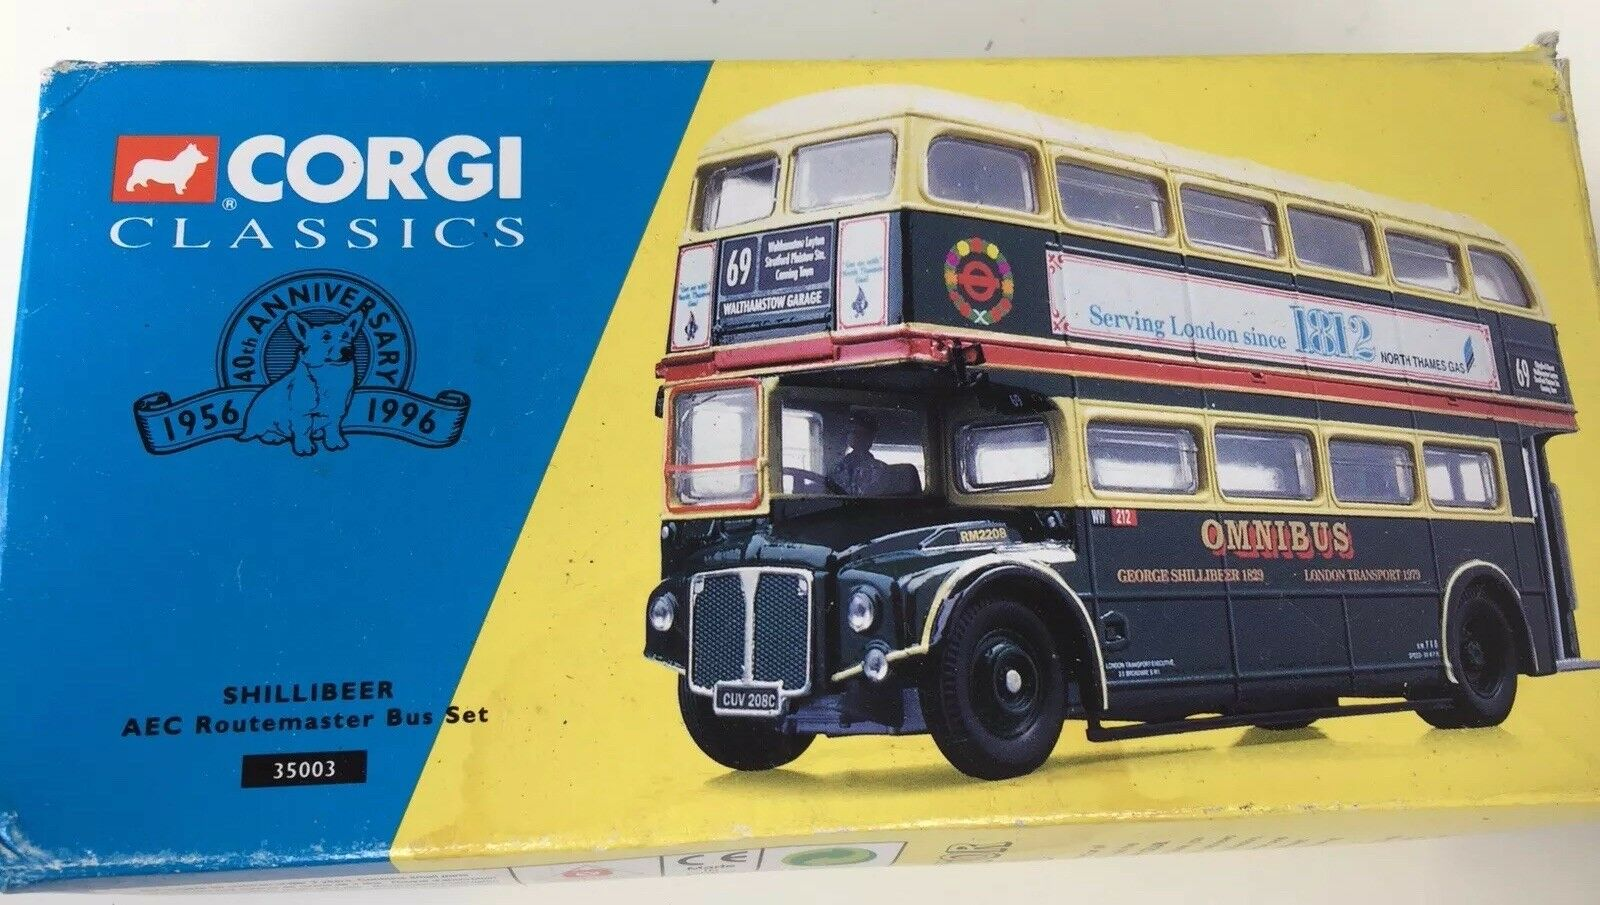 Corgi Classics 35003-Shillibeer AEC Routemaster Bus Set- Still wrapped in box